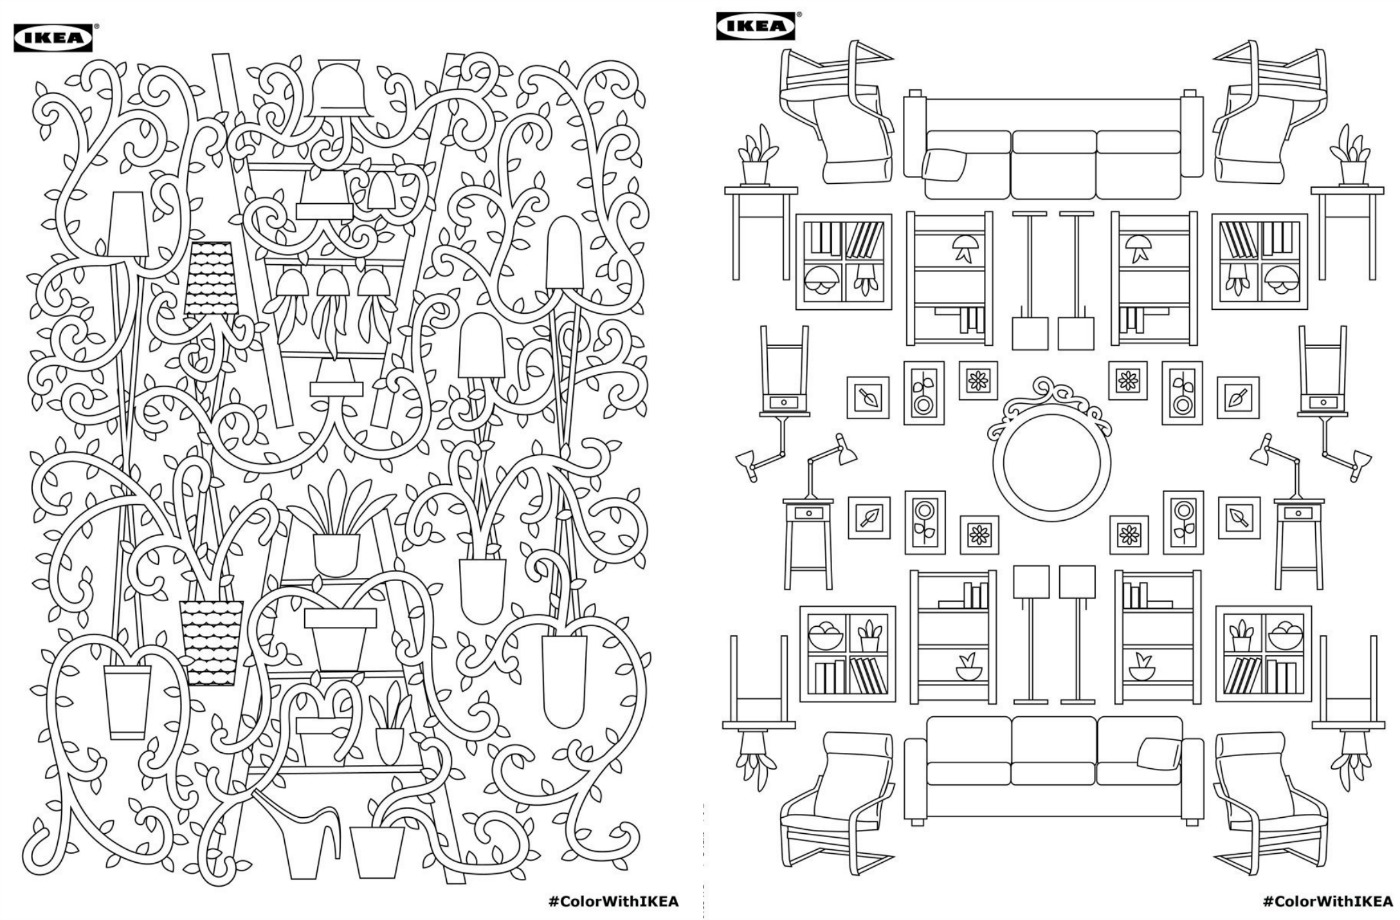 Download Ikea\'s Adult Coloring Book for Free! | 6sqft